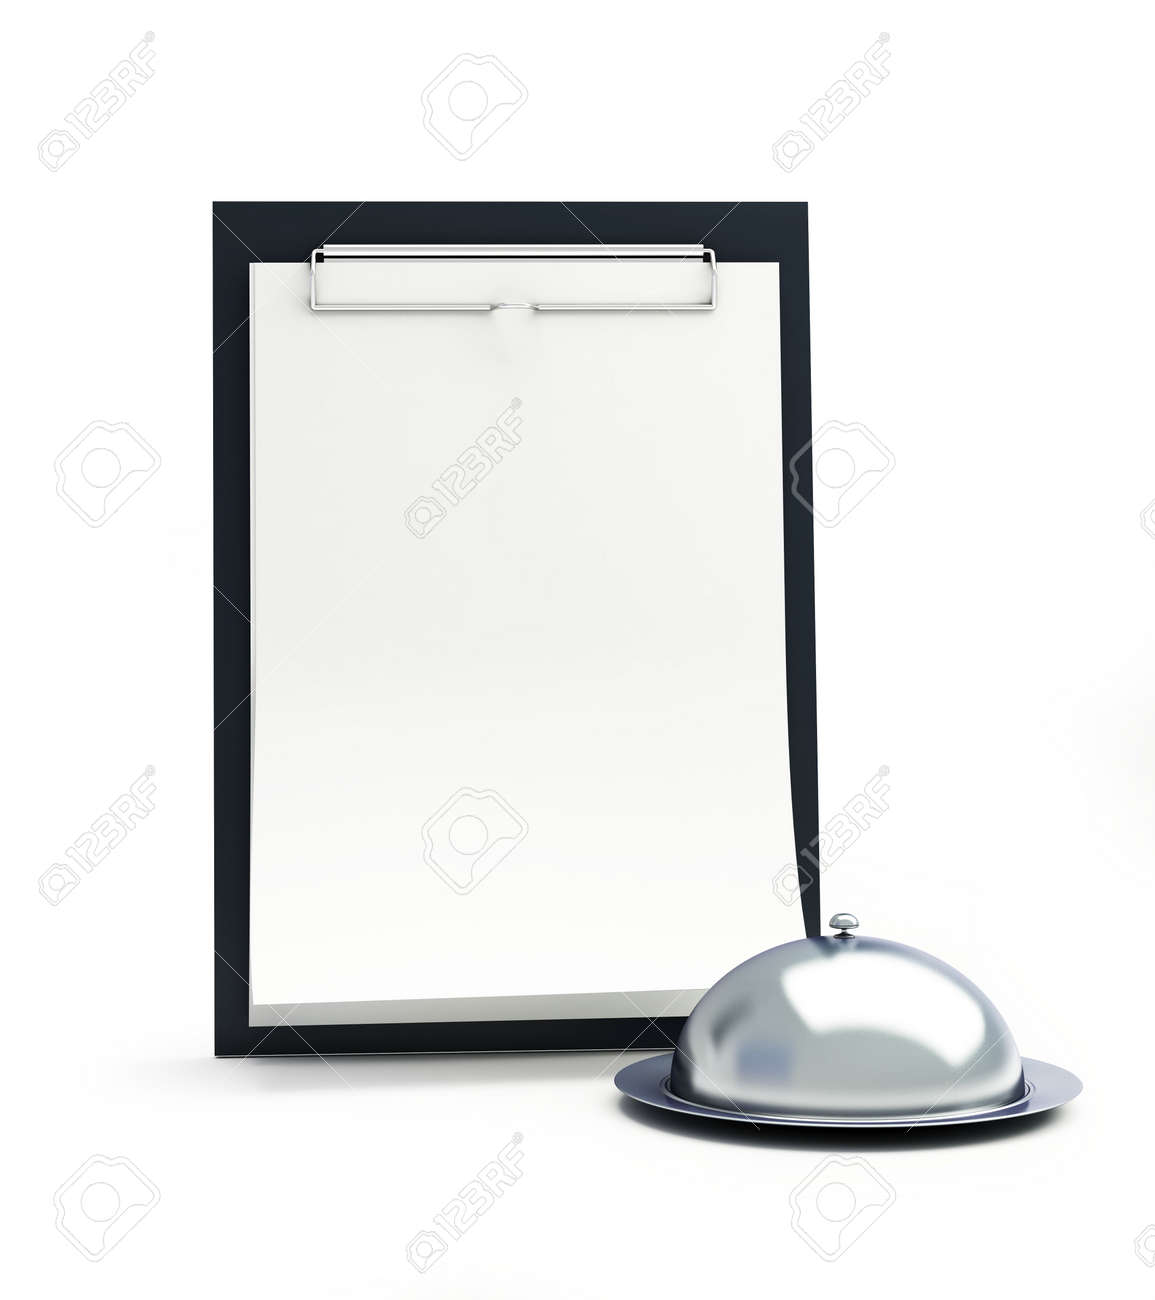 blank food on a white background Stock Photo - 7685730